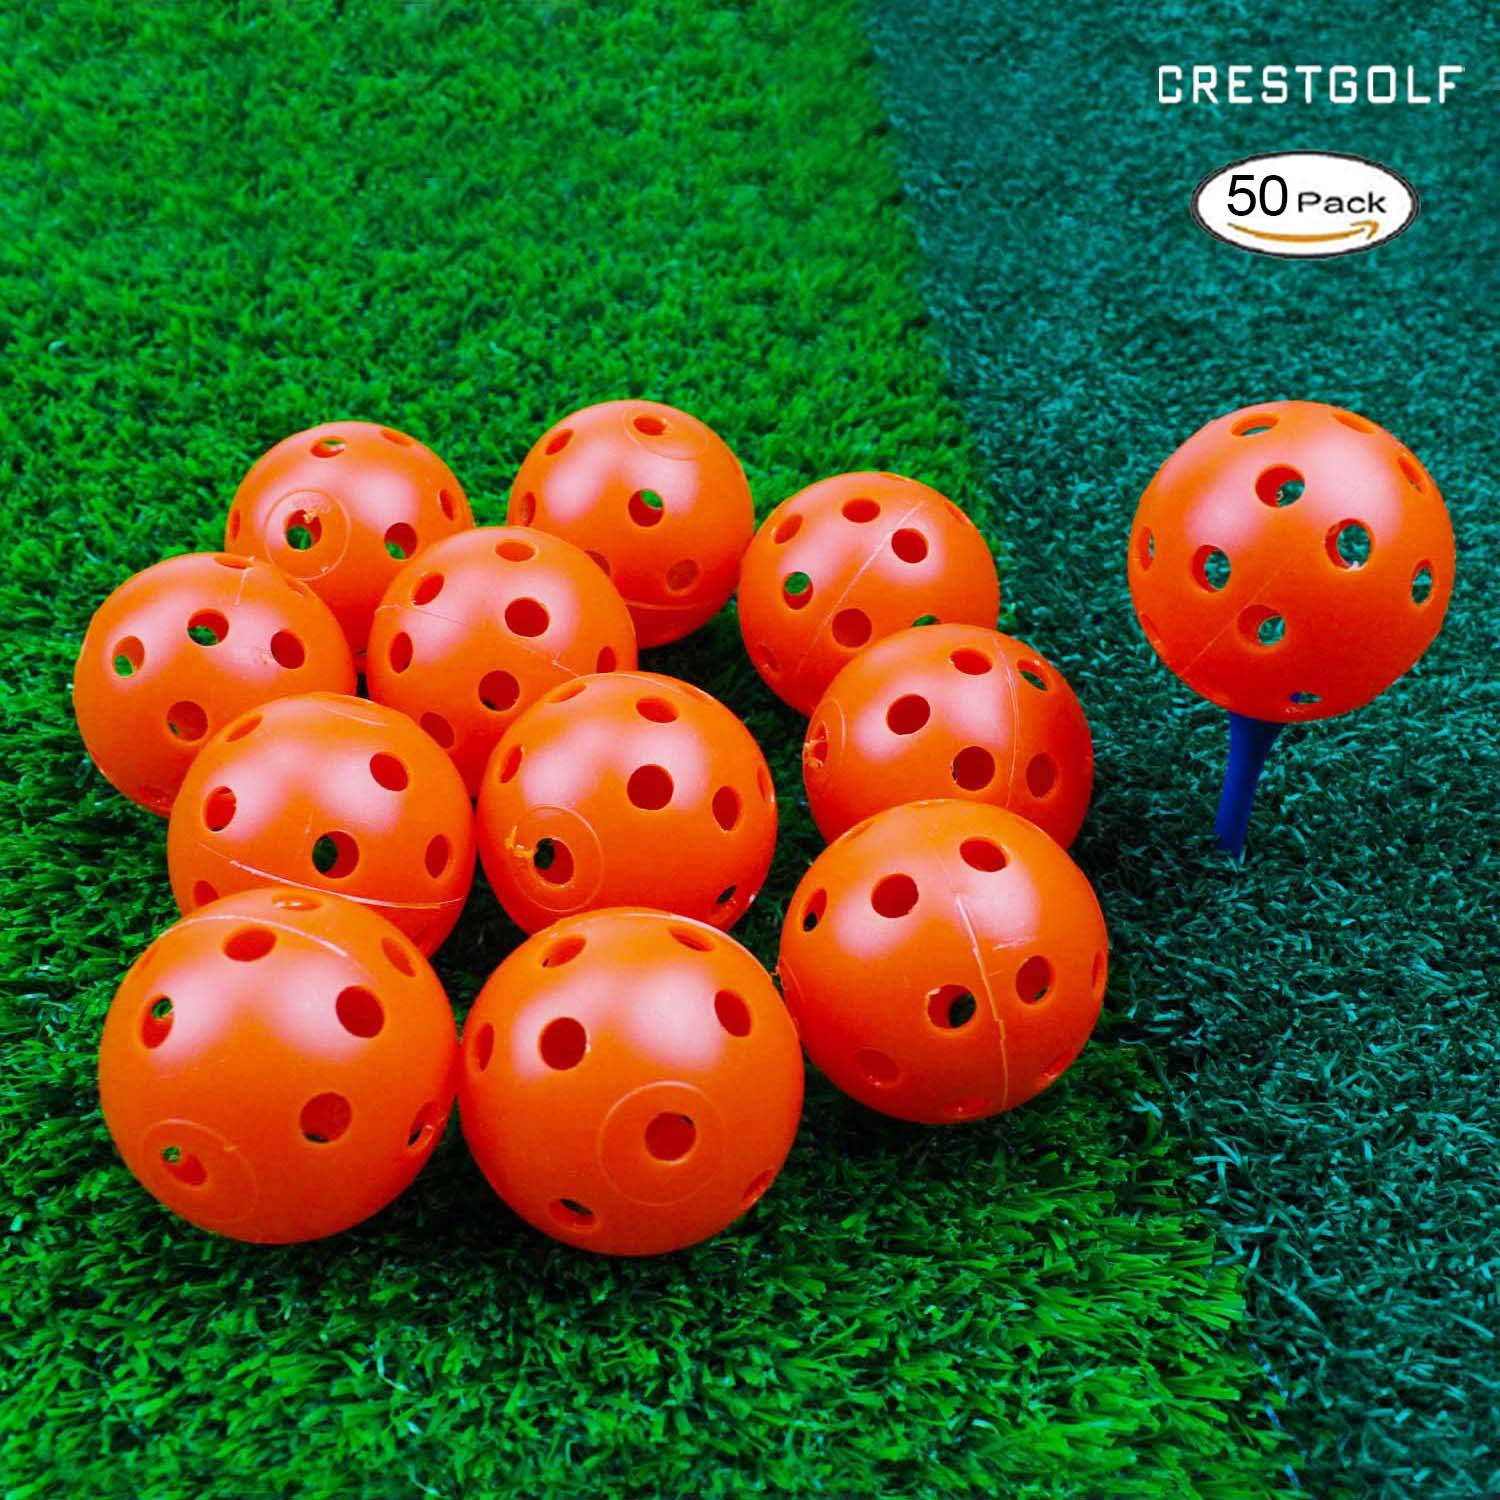 Crestgolf 12/50 Pack Plastic Golf Training Balls - Airflow Hollow 40mm Golf Balls for Driving Range, Swing Practice, Home Use,Pet Play.(Orange,50pack) by Crestgolf